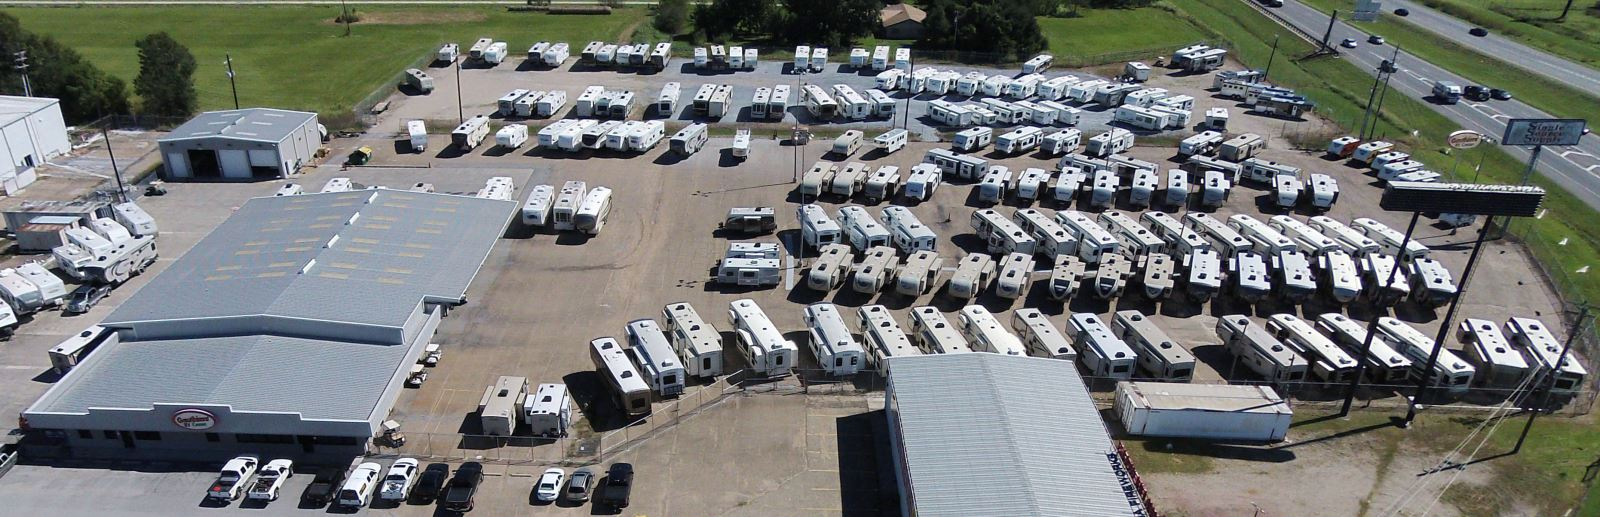 Fifth Wheels, Travel Trailers, Toy Haulers, Horse Trailers for Sale in Lafayette, LA